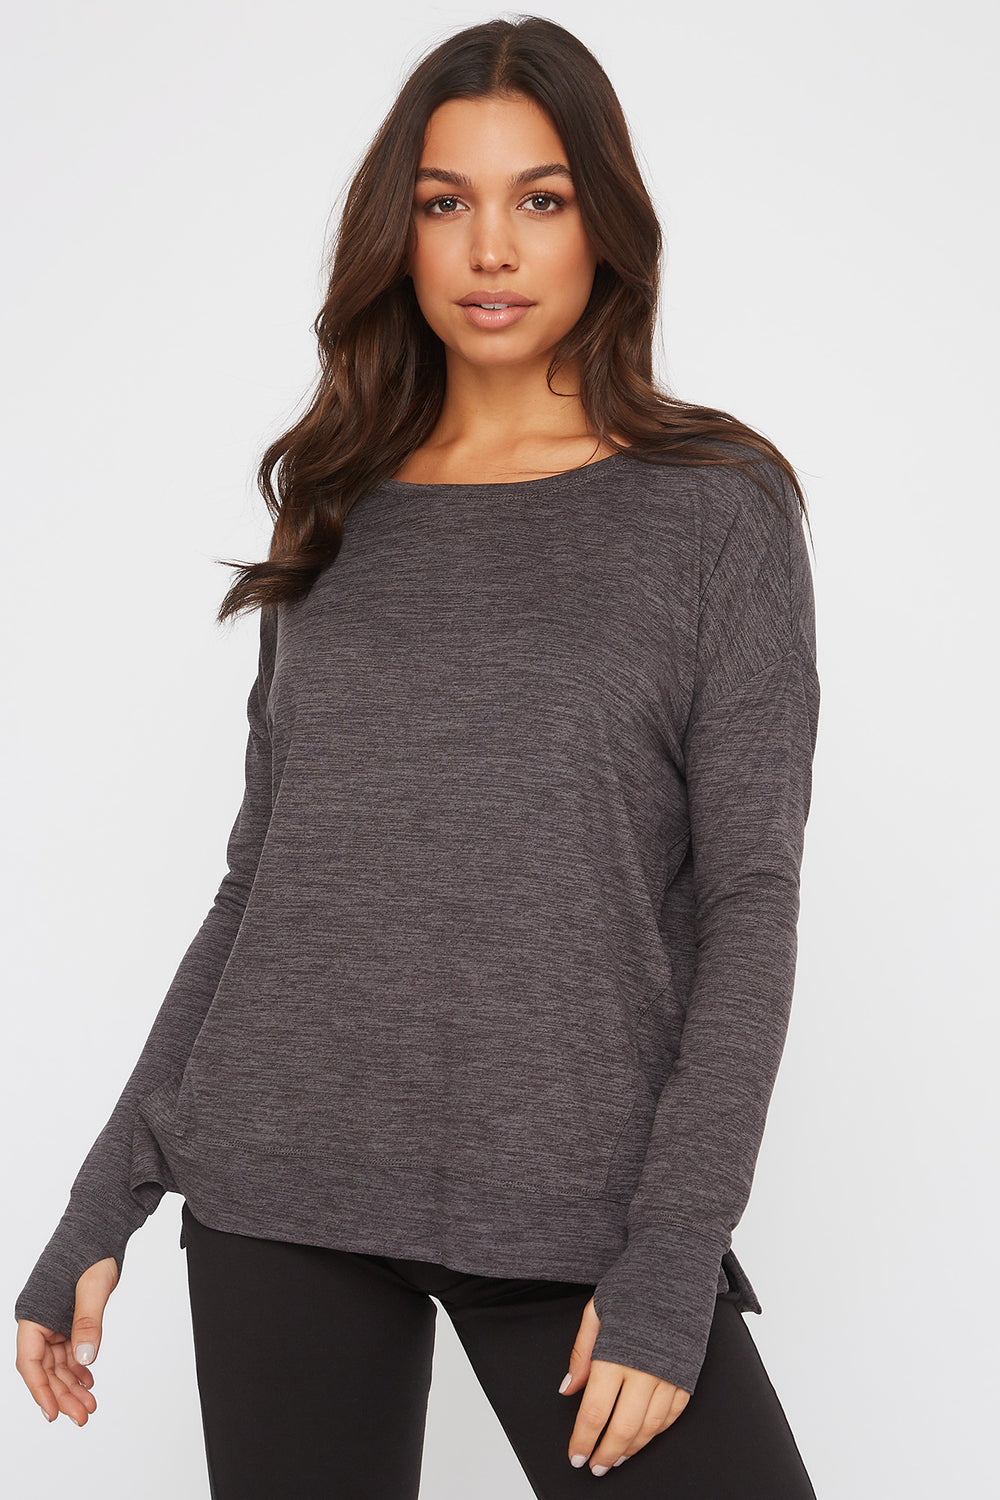 Infinite Oversized Active Long Sleeve Charcoal